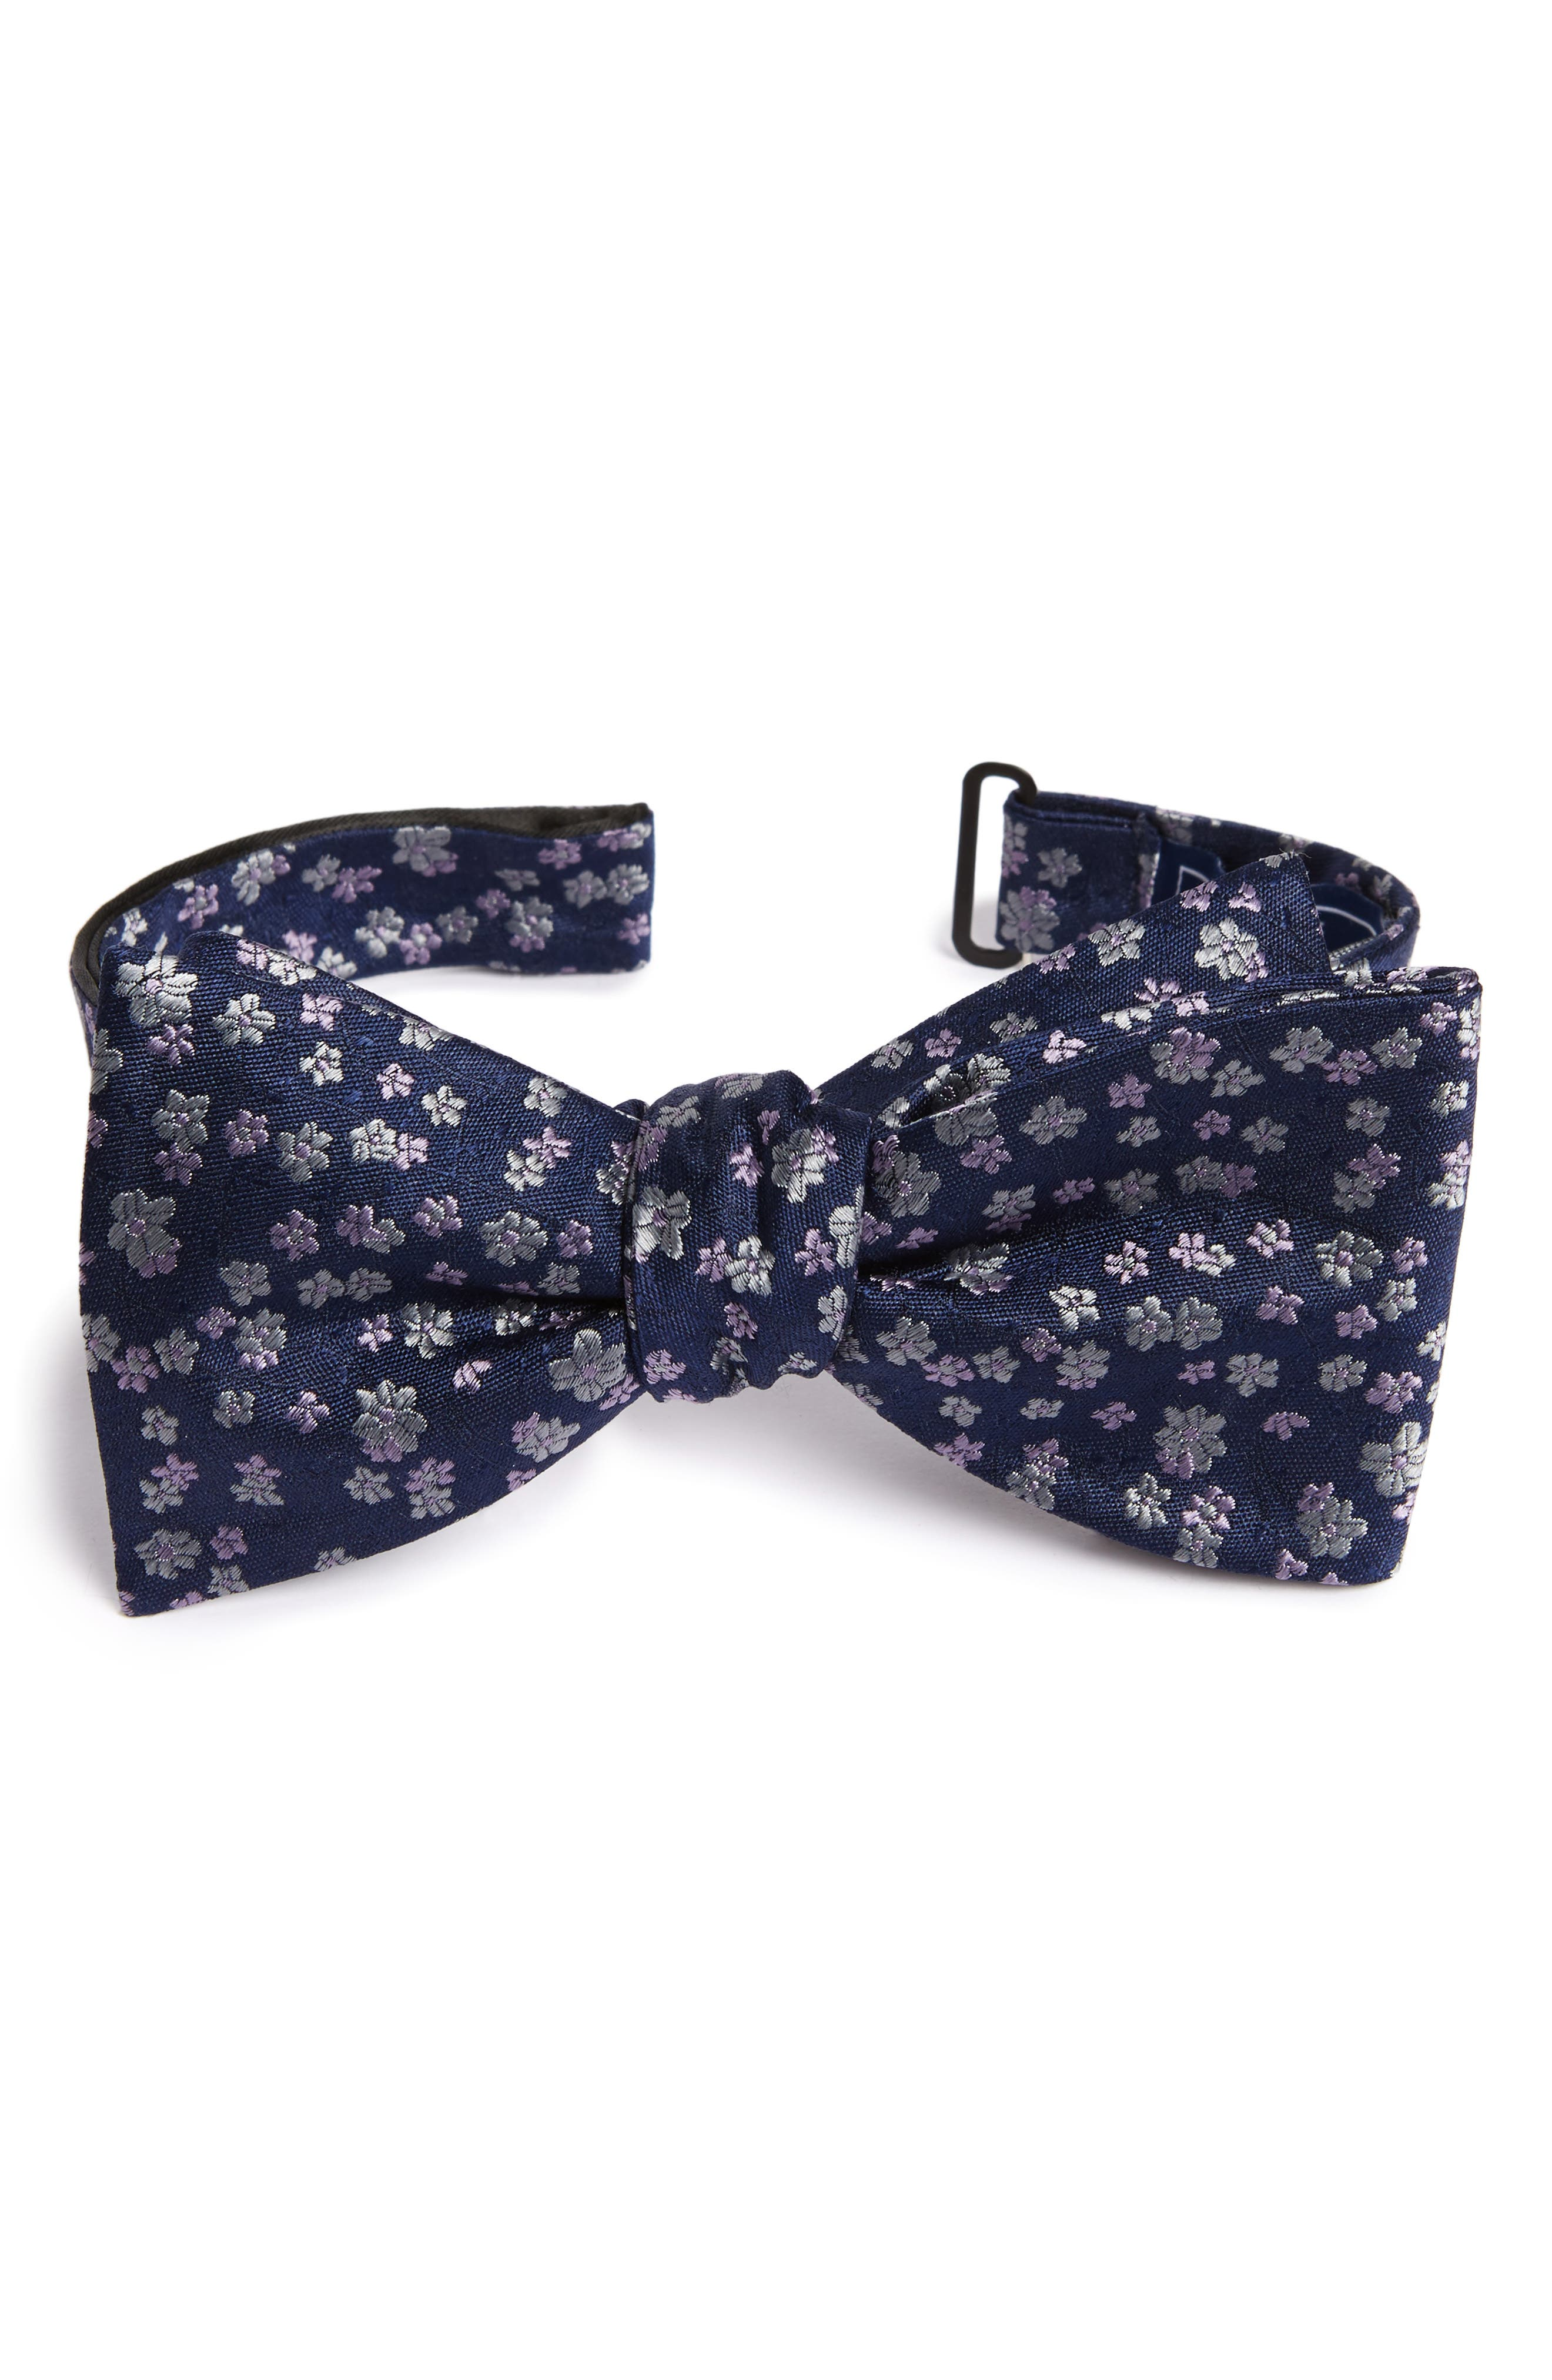 Main Image - The Tie Bar Free Fall Floral Silk Bow Tie